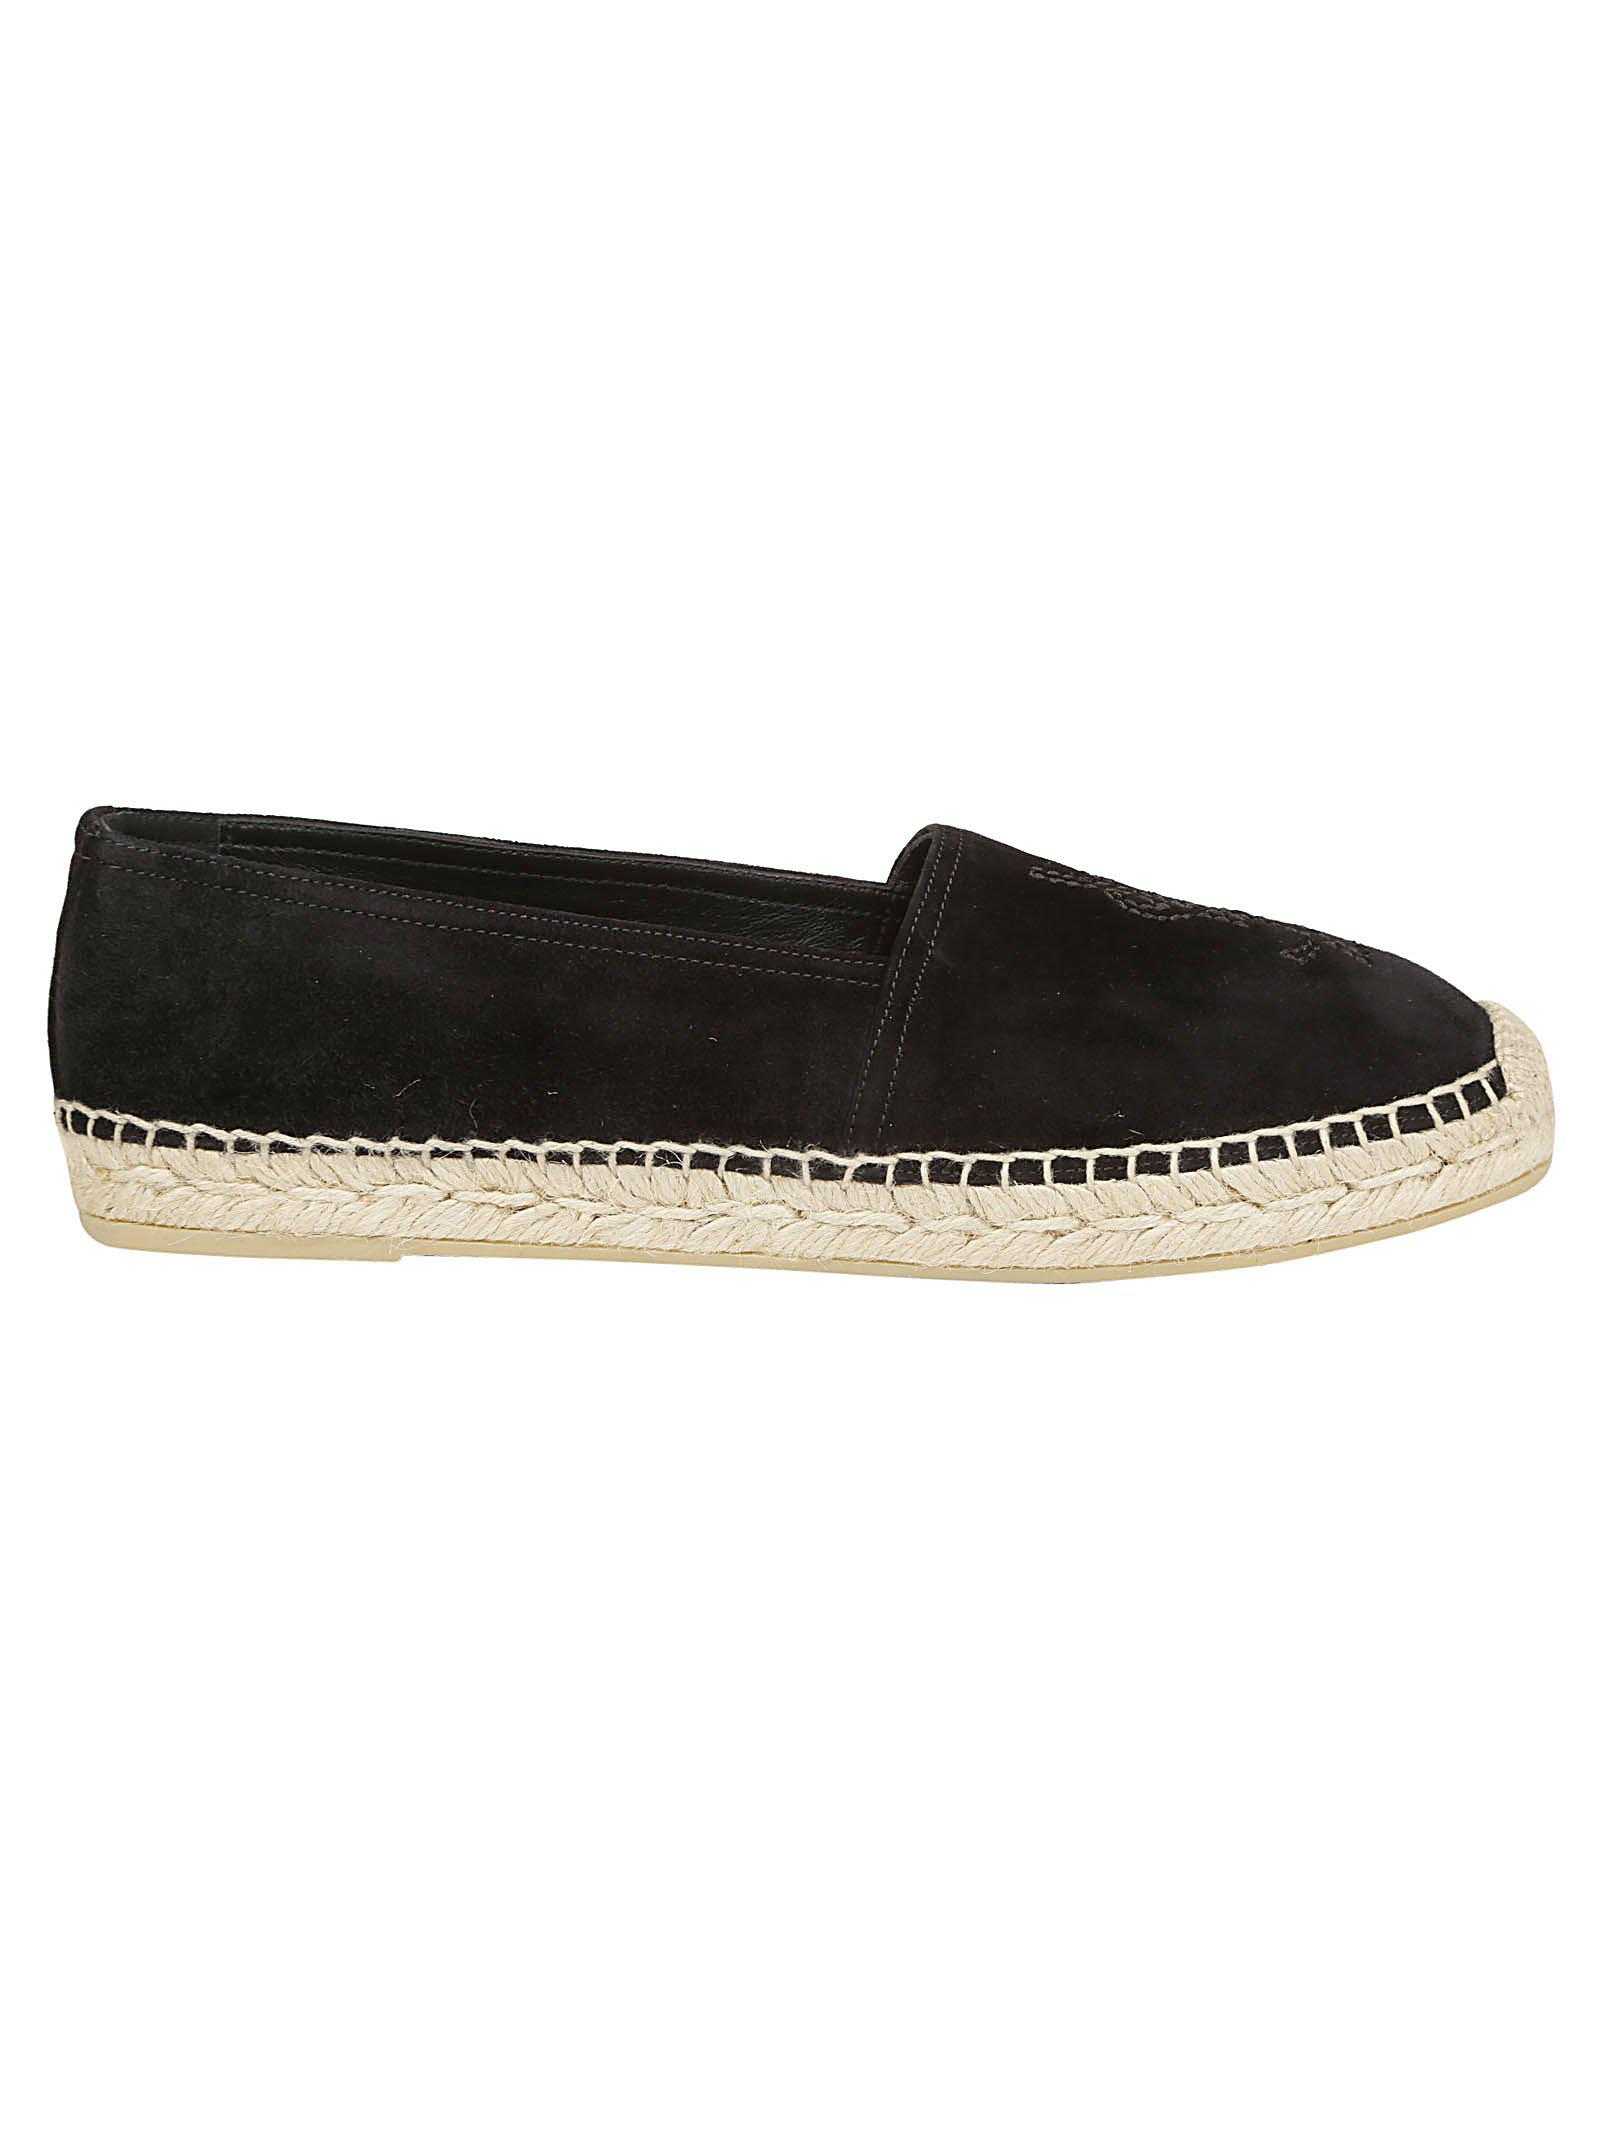 d5f00c7068ed3 Saint Laurent Black Suede Logo Espadrilles in Black - Save 50% - Lyst